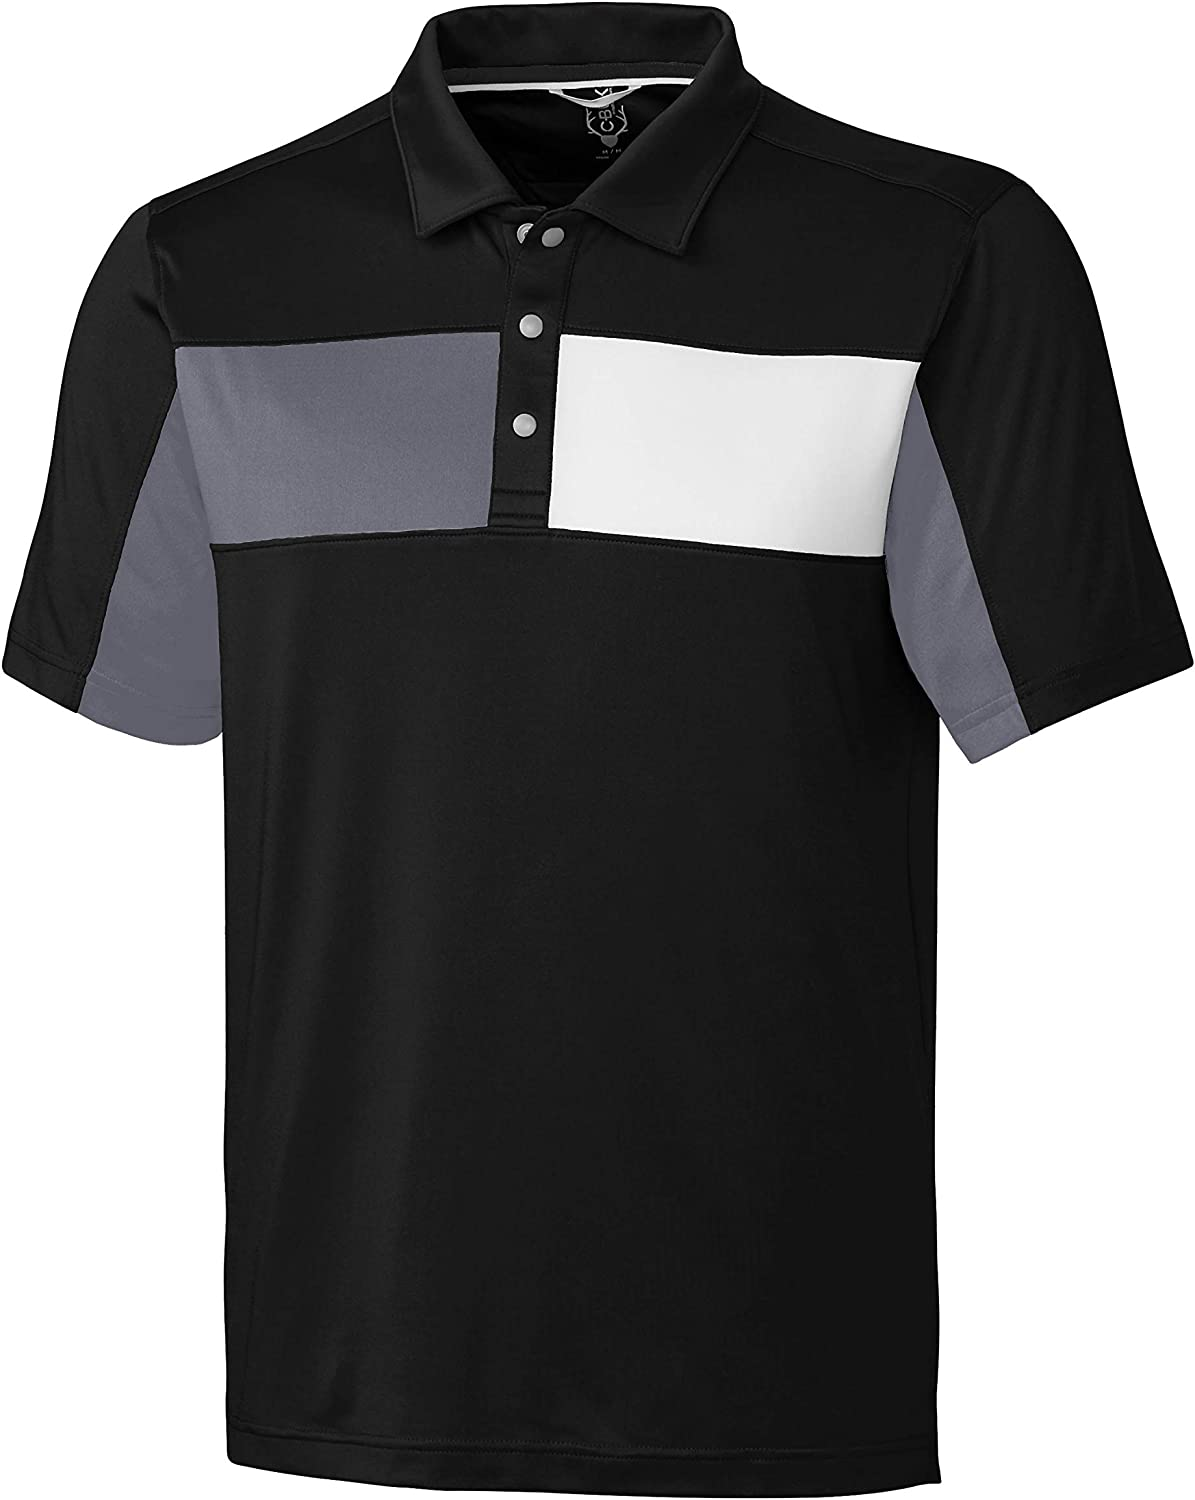 CBUK Men's Polo Challenge the lowest price of Manufacturer regenerated product Japan